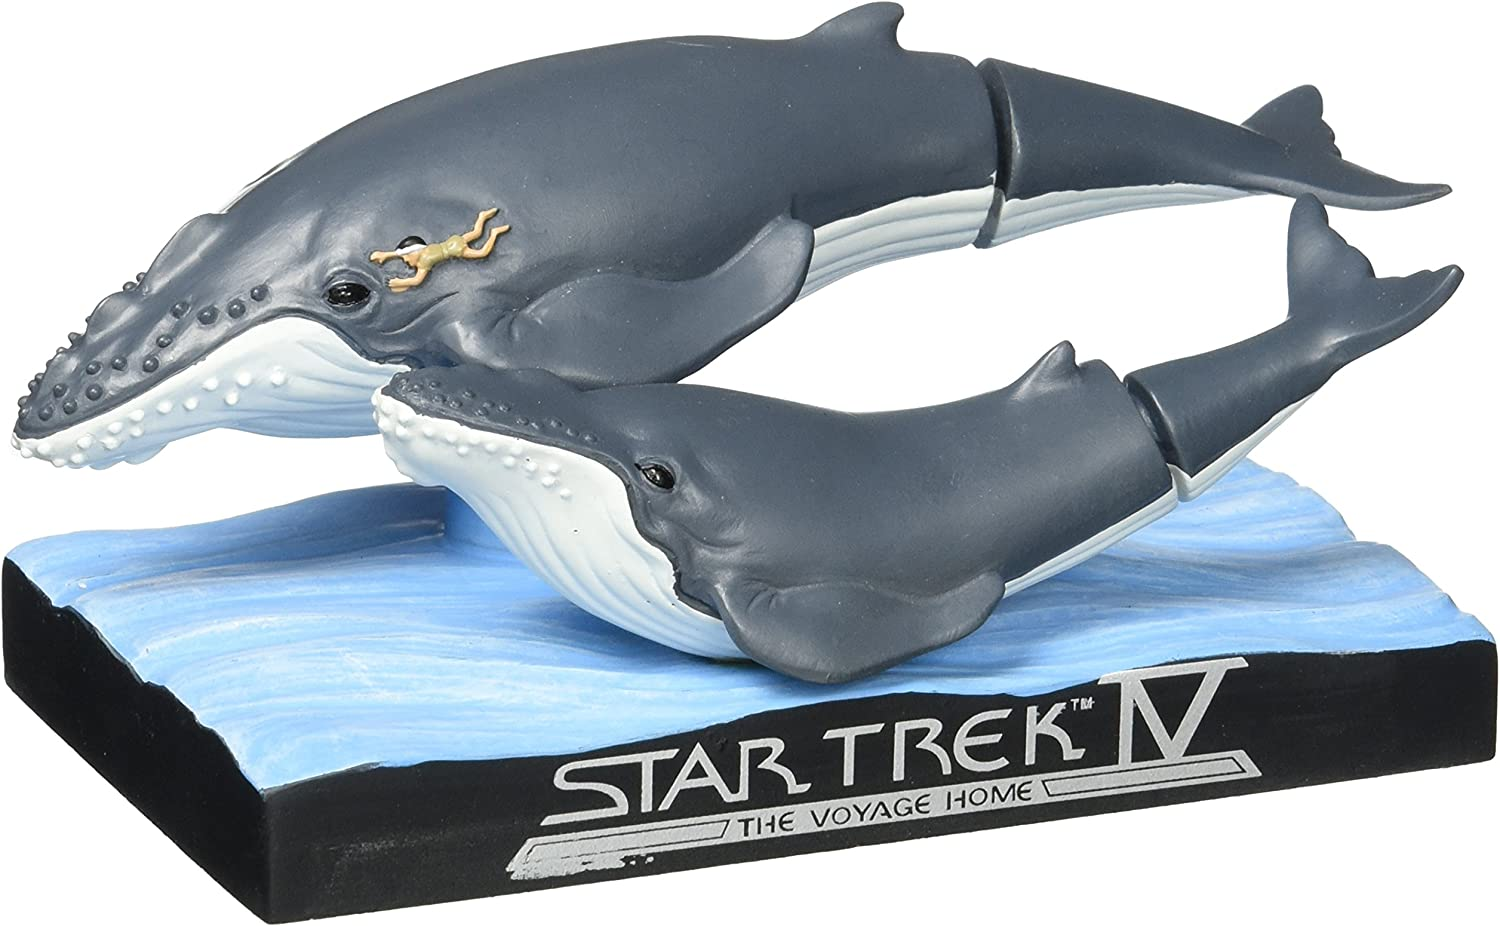 Convention Exclusive Star Trek IV BBP16070 Whales with Spock Bobble Head